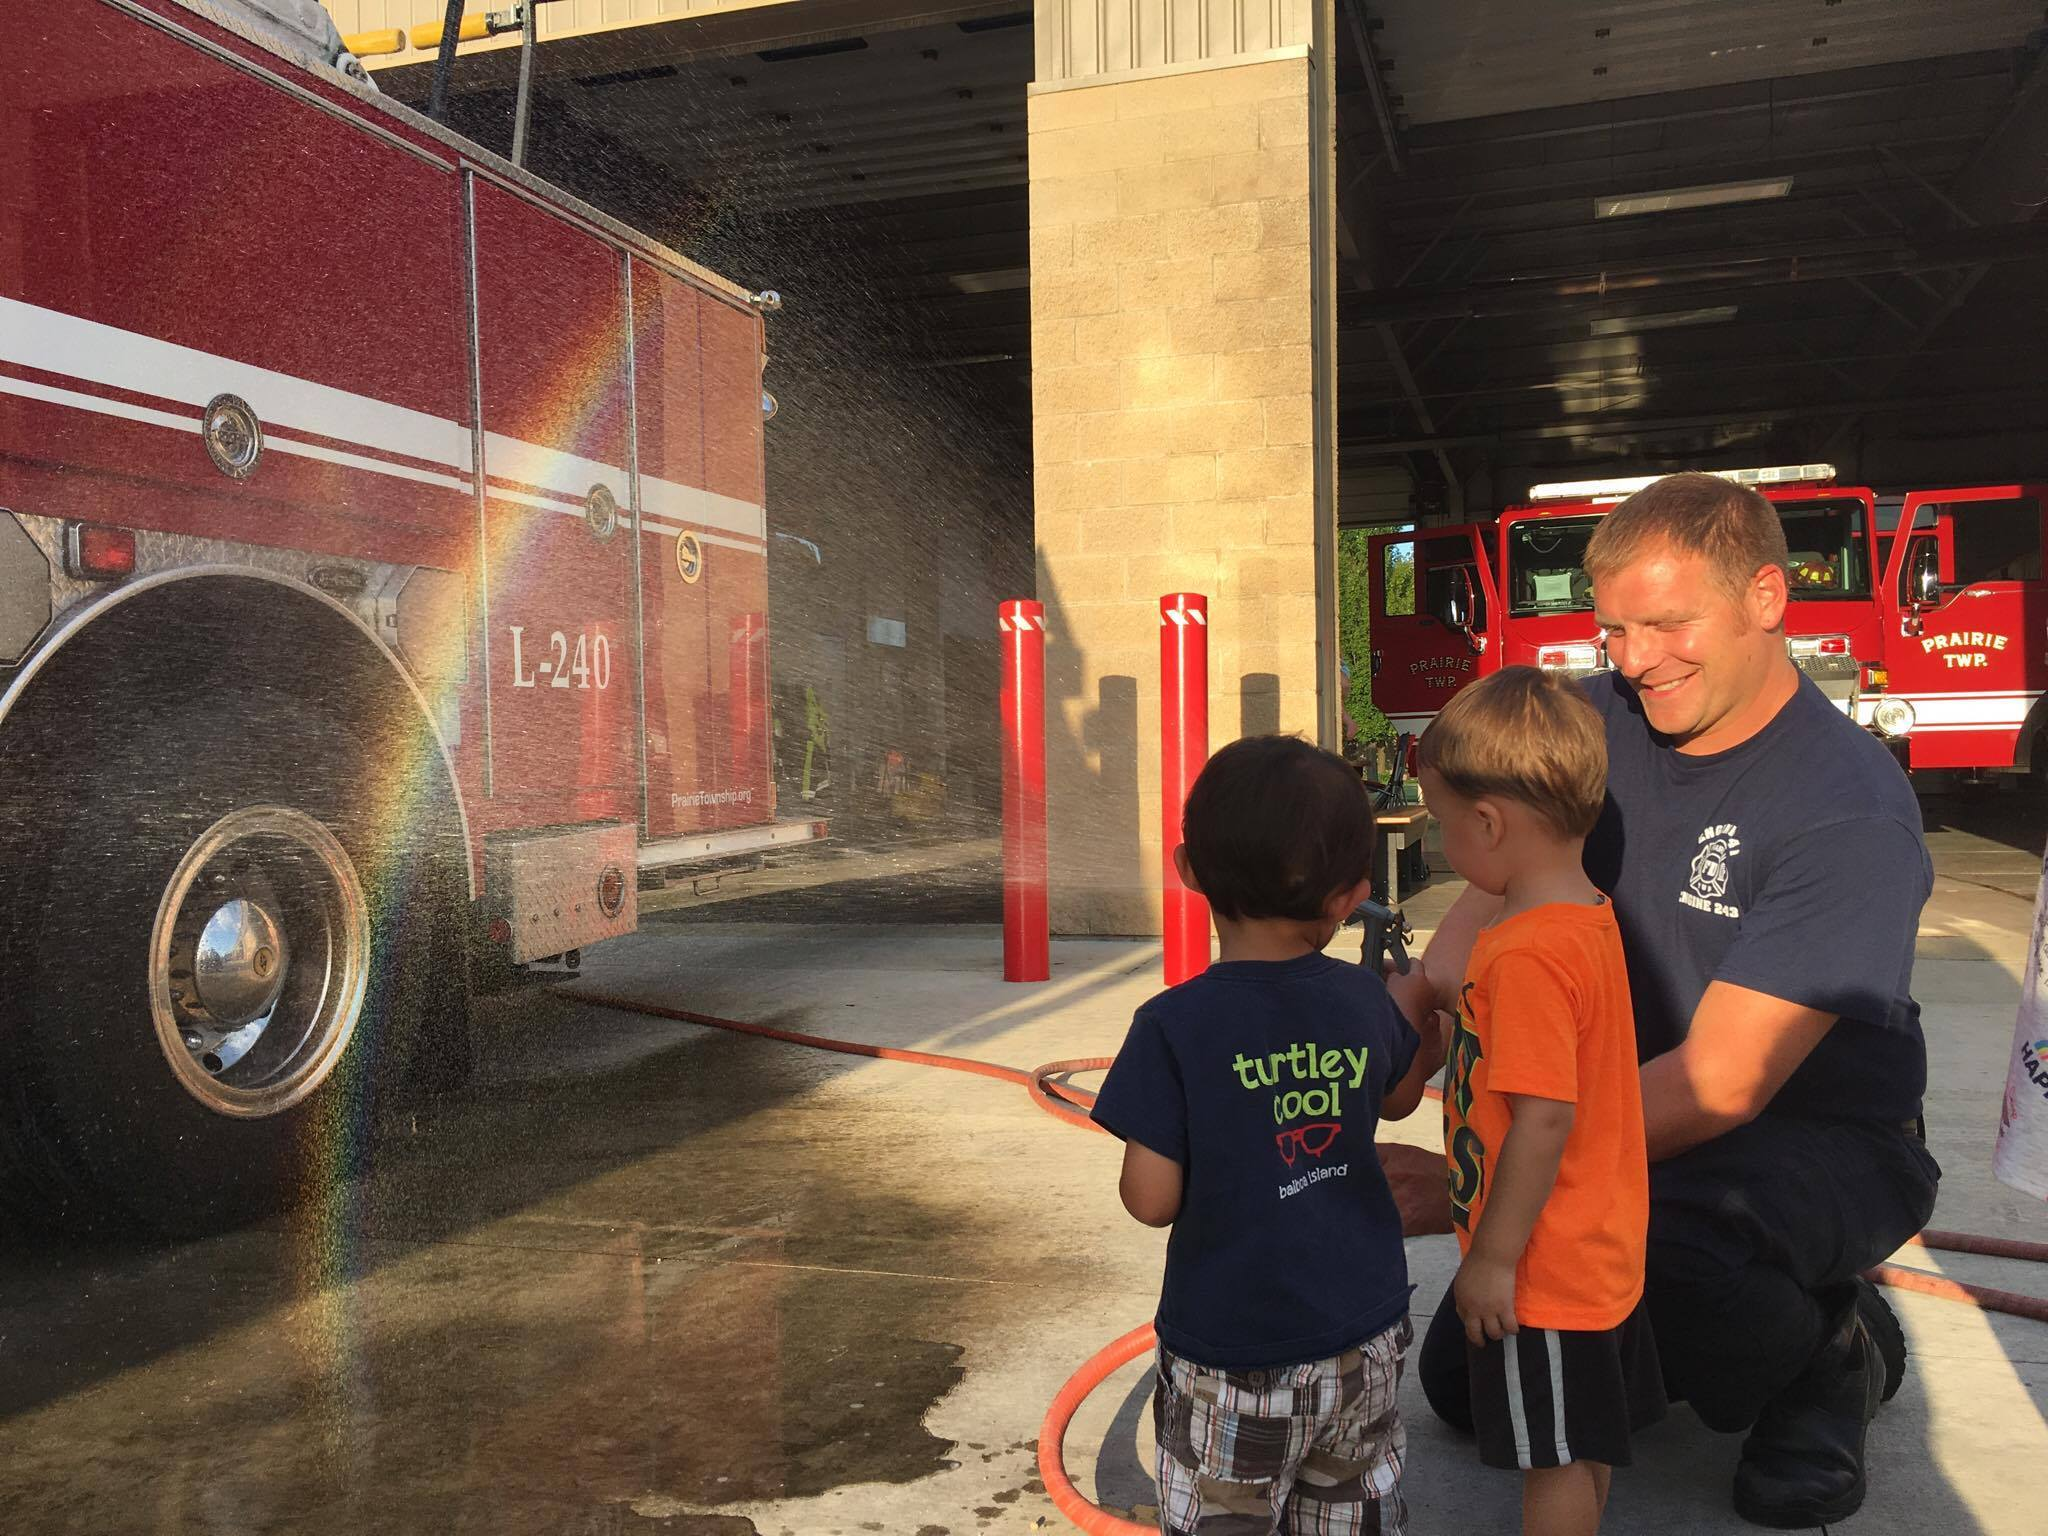 Firefighters Washing a Fire Truck with Two Kids